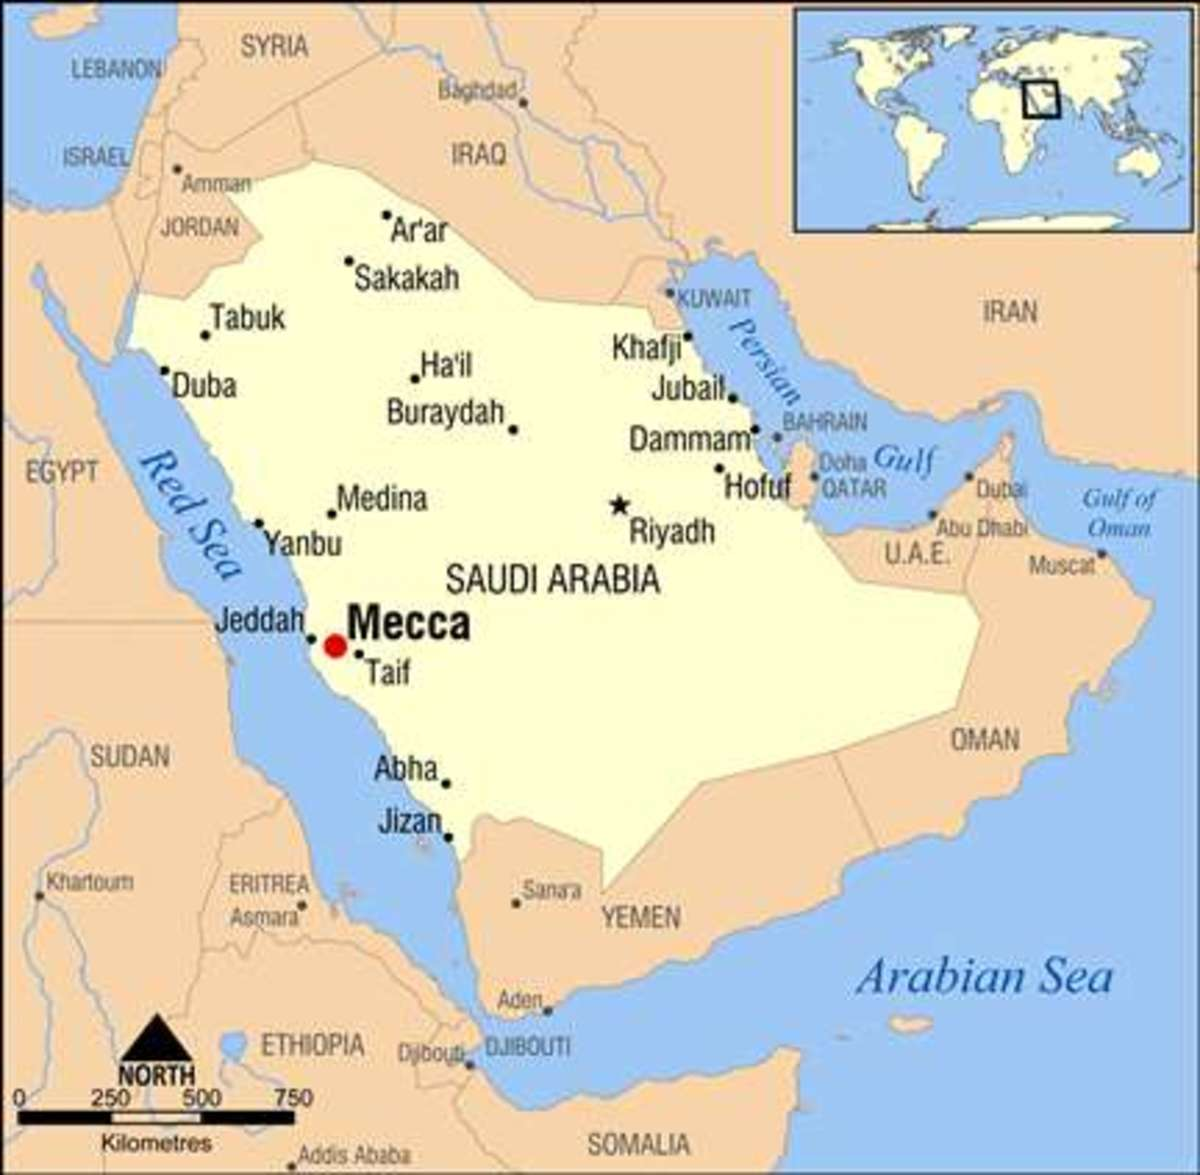 Map of Saudi Arabia with location of Mecca